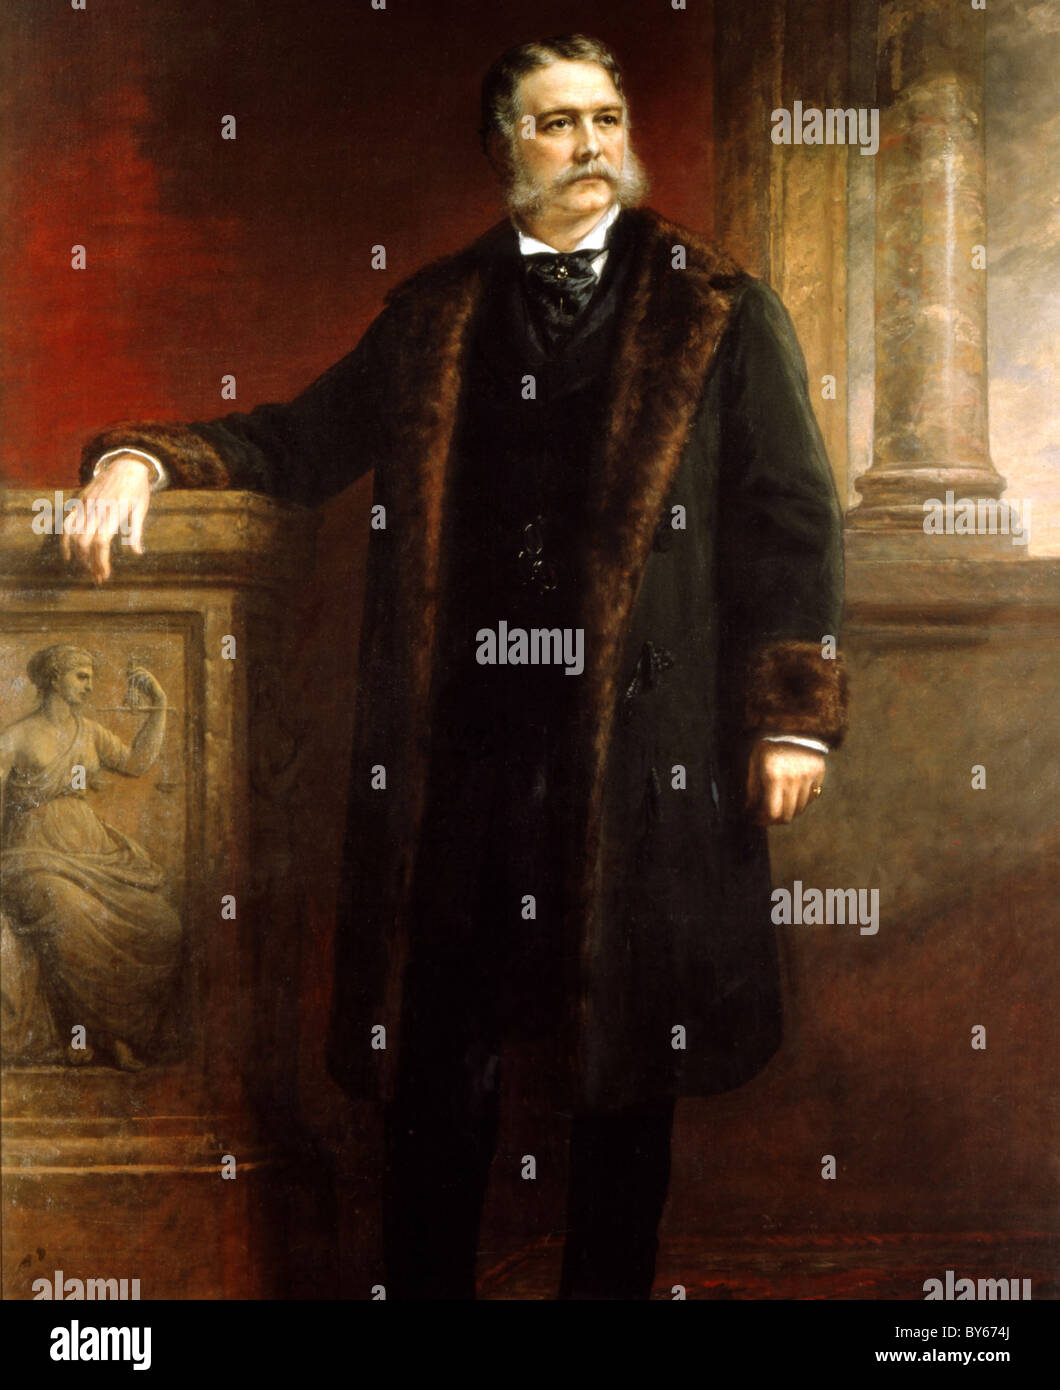 Chester Alan Arthur was the 21st President of the United States. - Stock Image